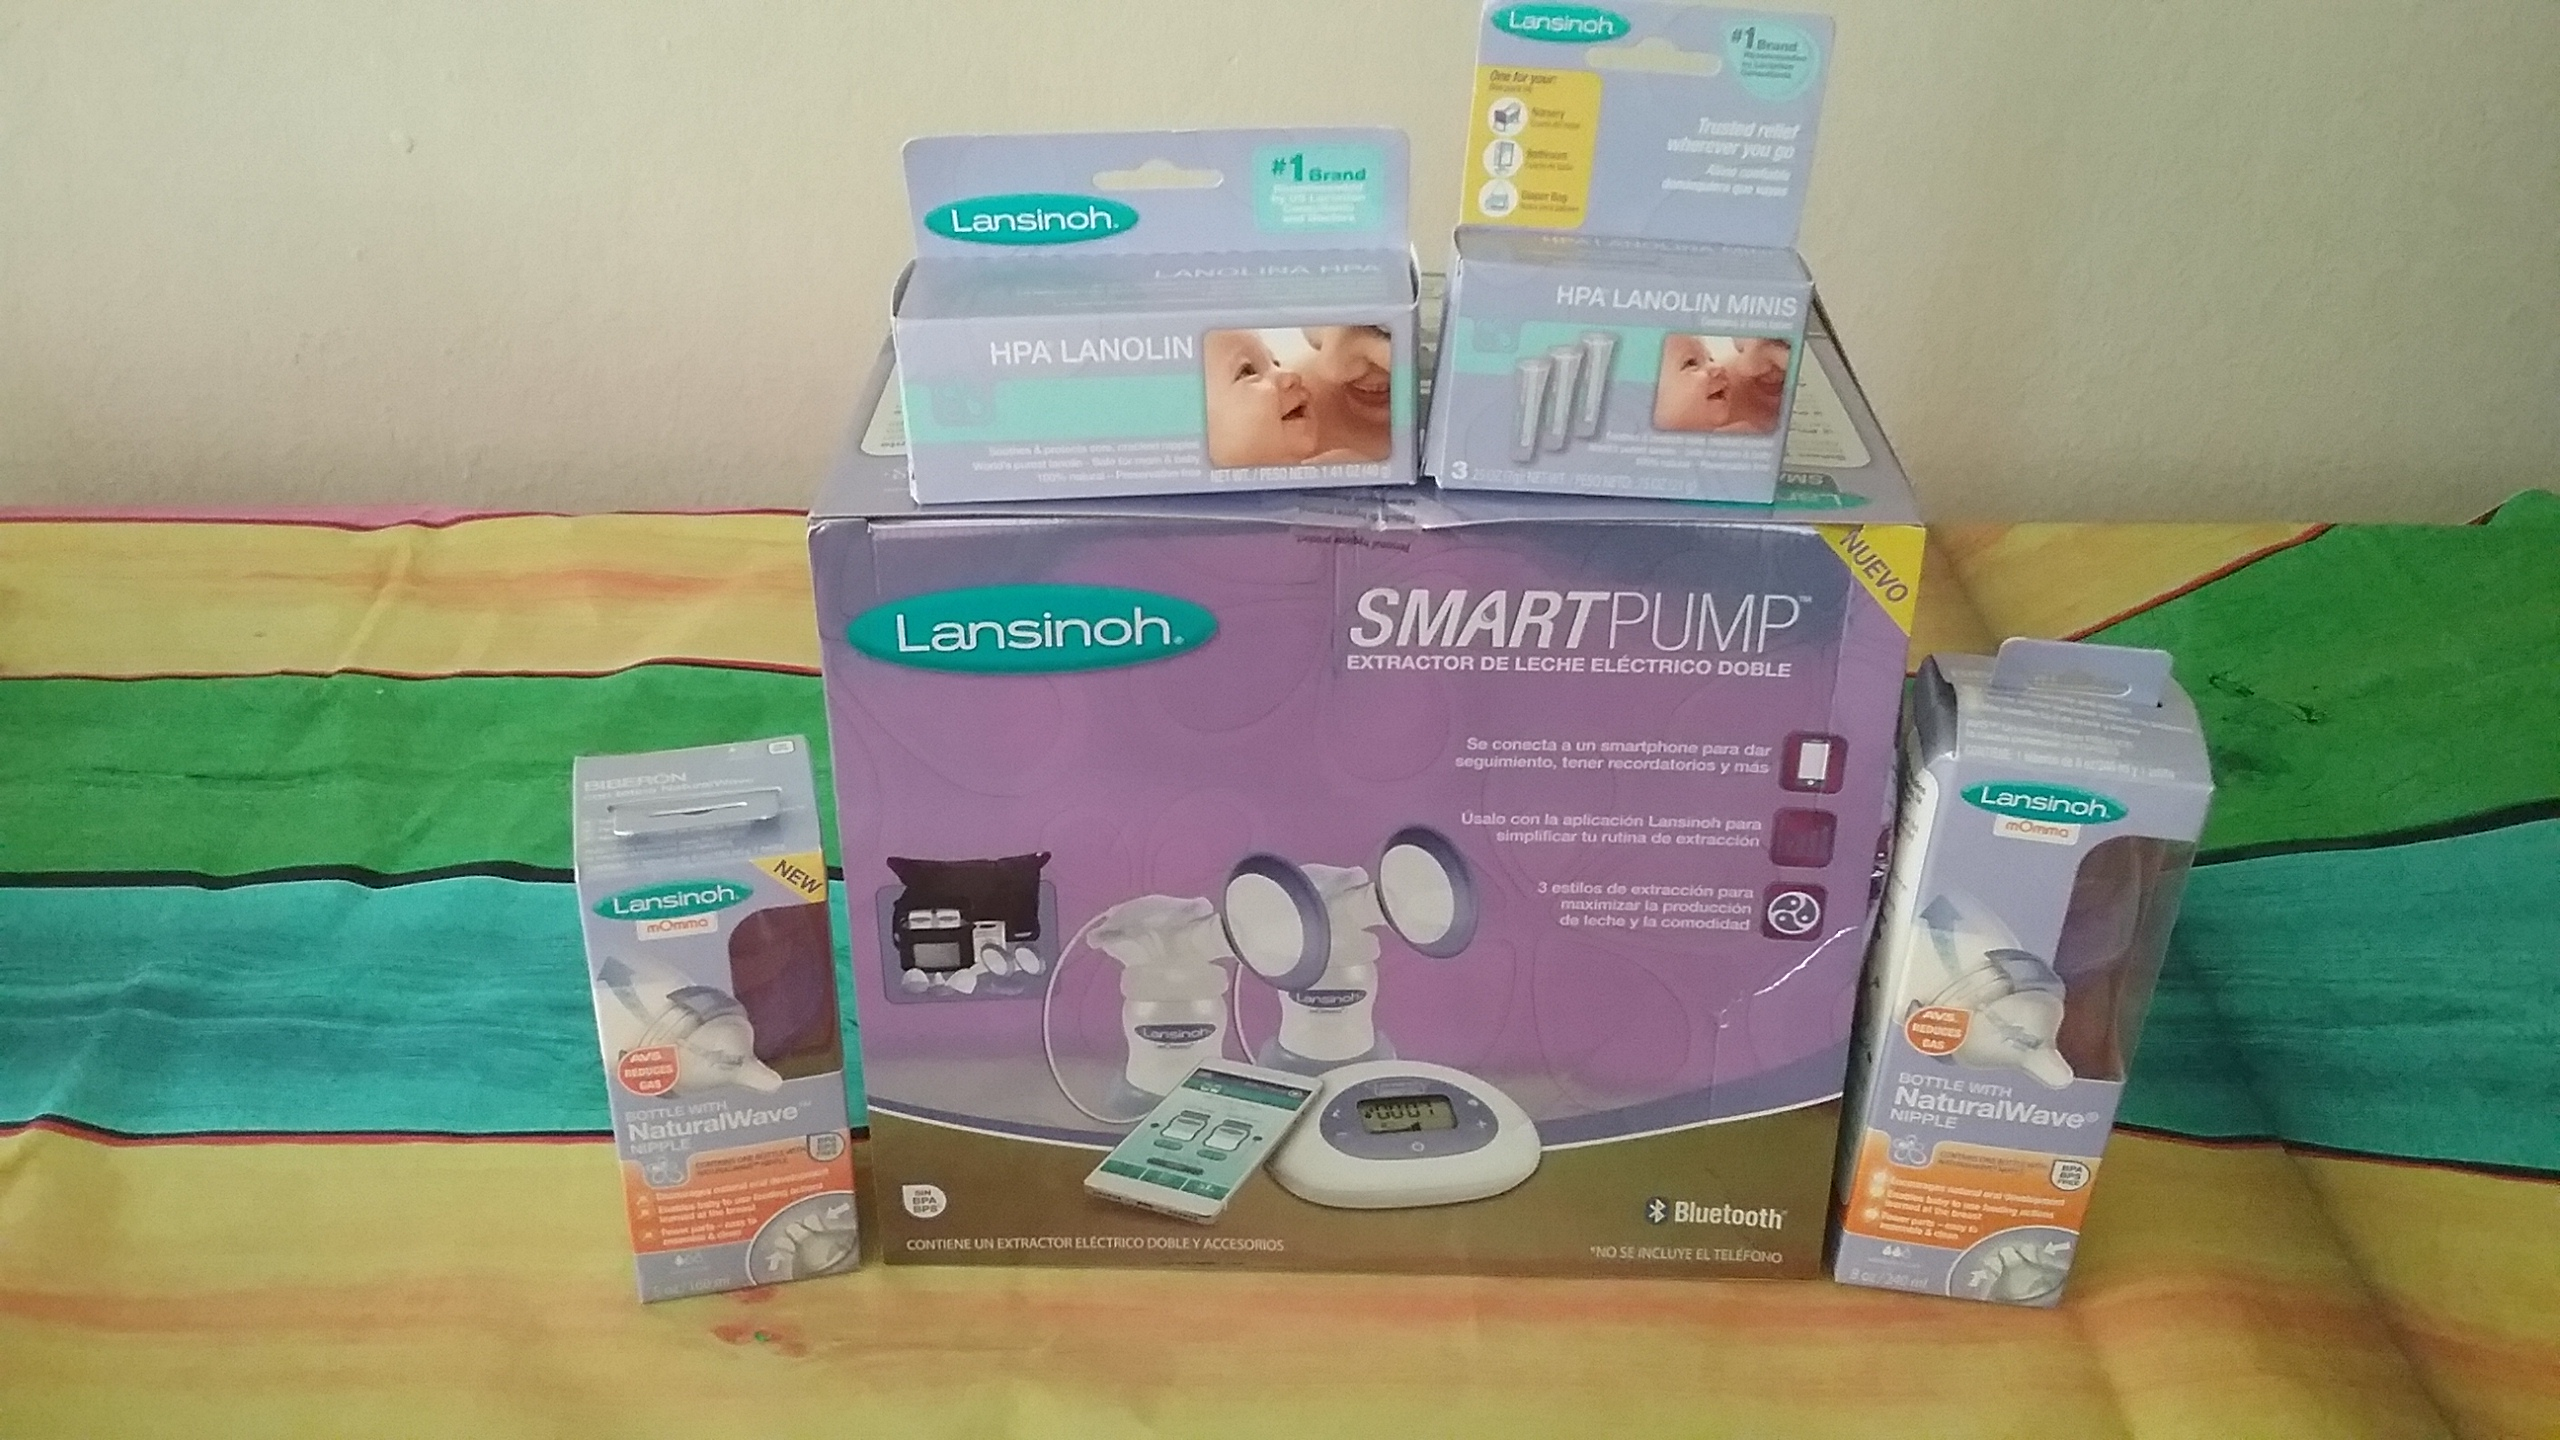 August is Breastfeeding Month and we are sharing products from Lanisinoh. #Breastfeedingmonth @LansinohUSA